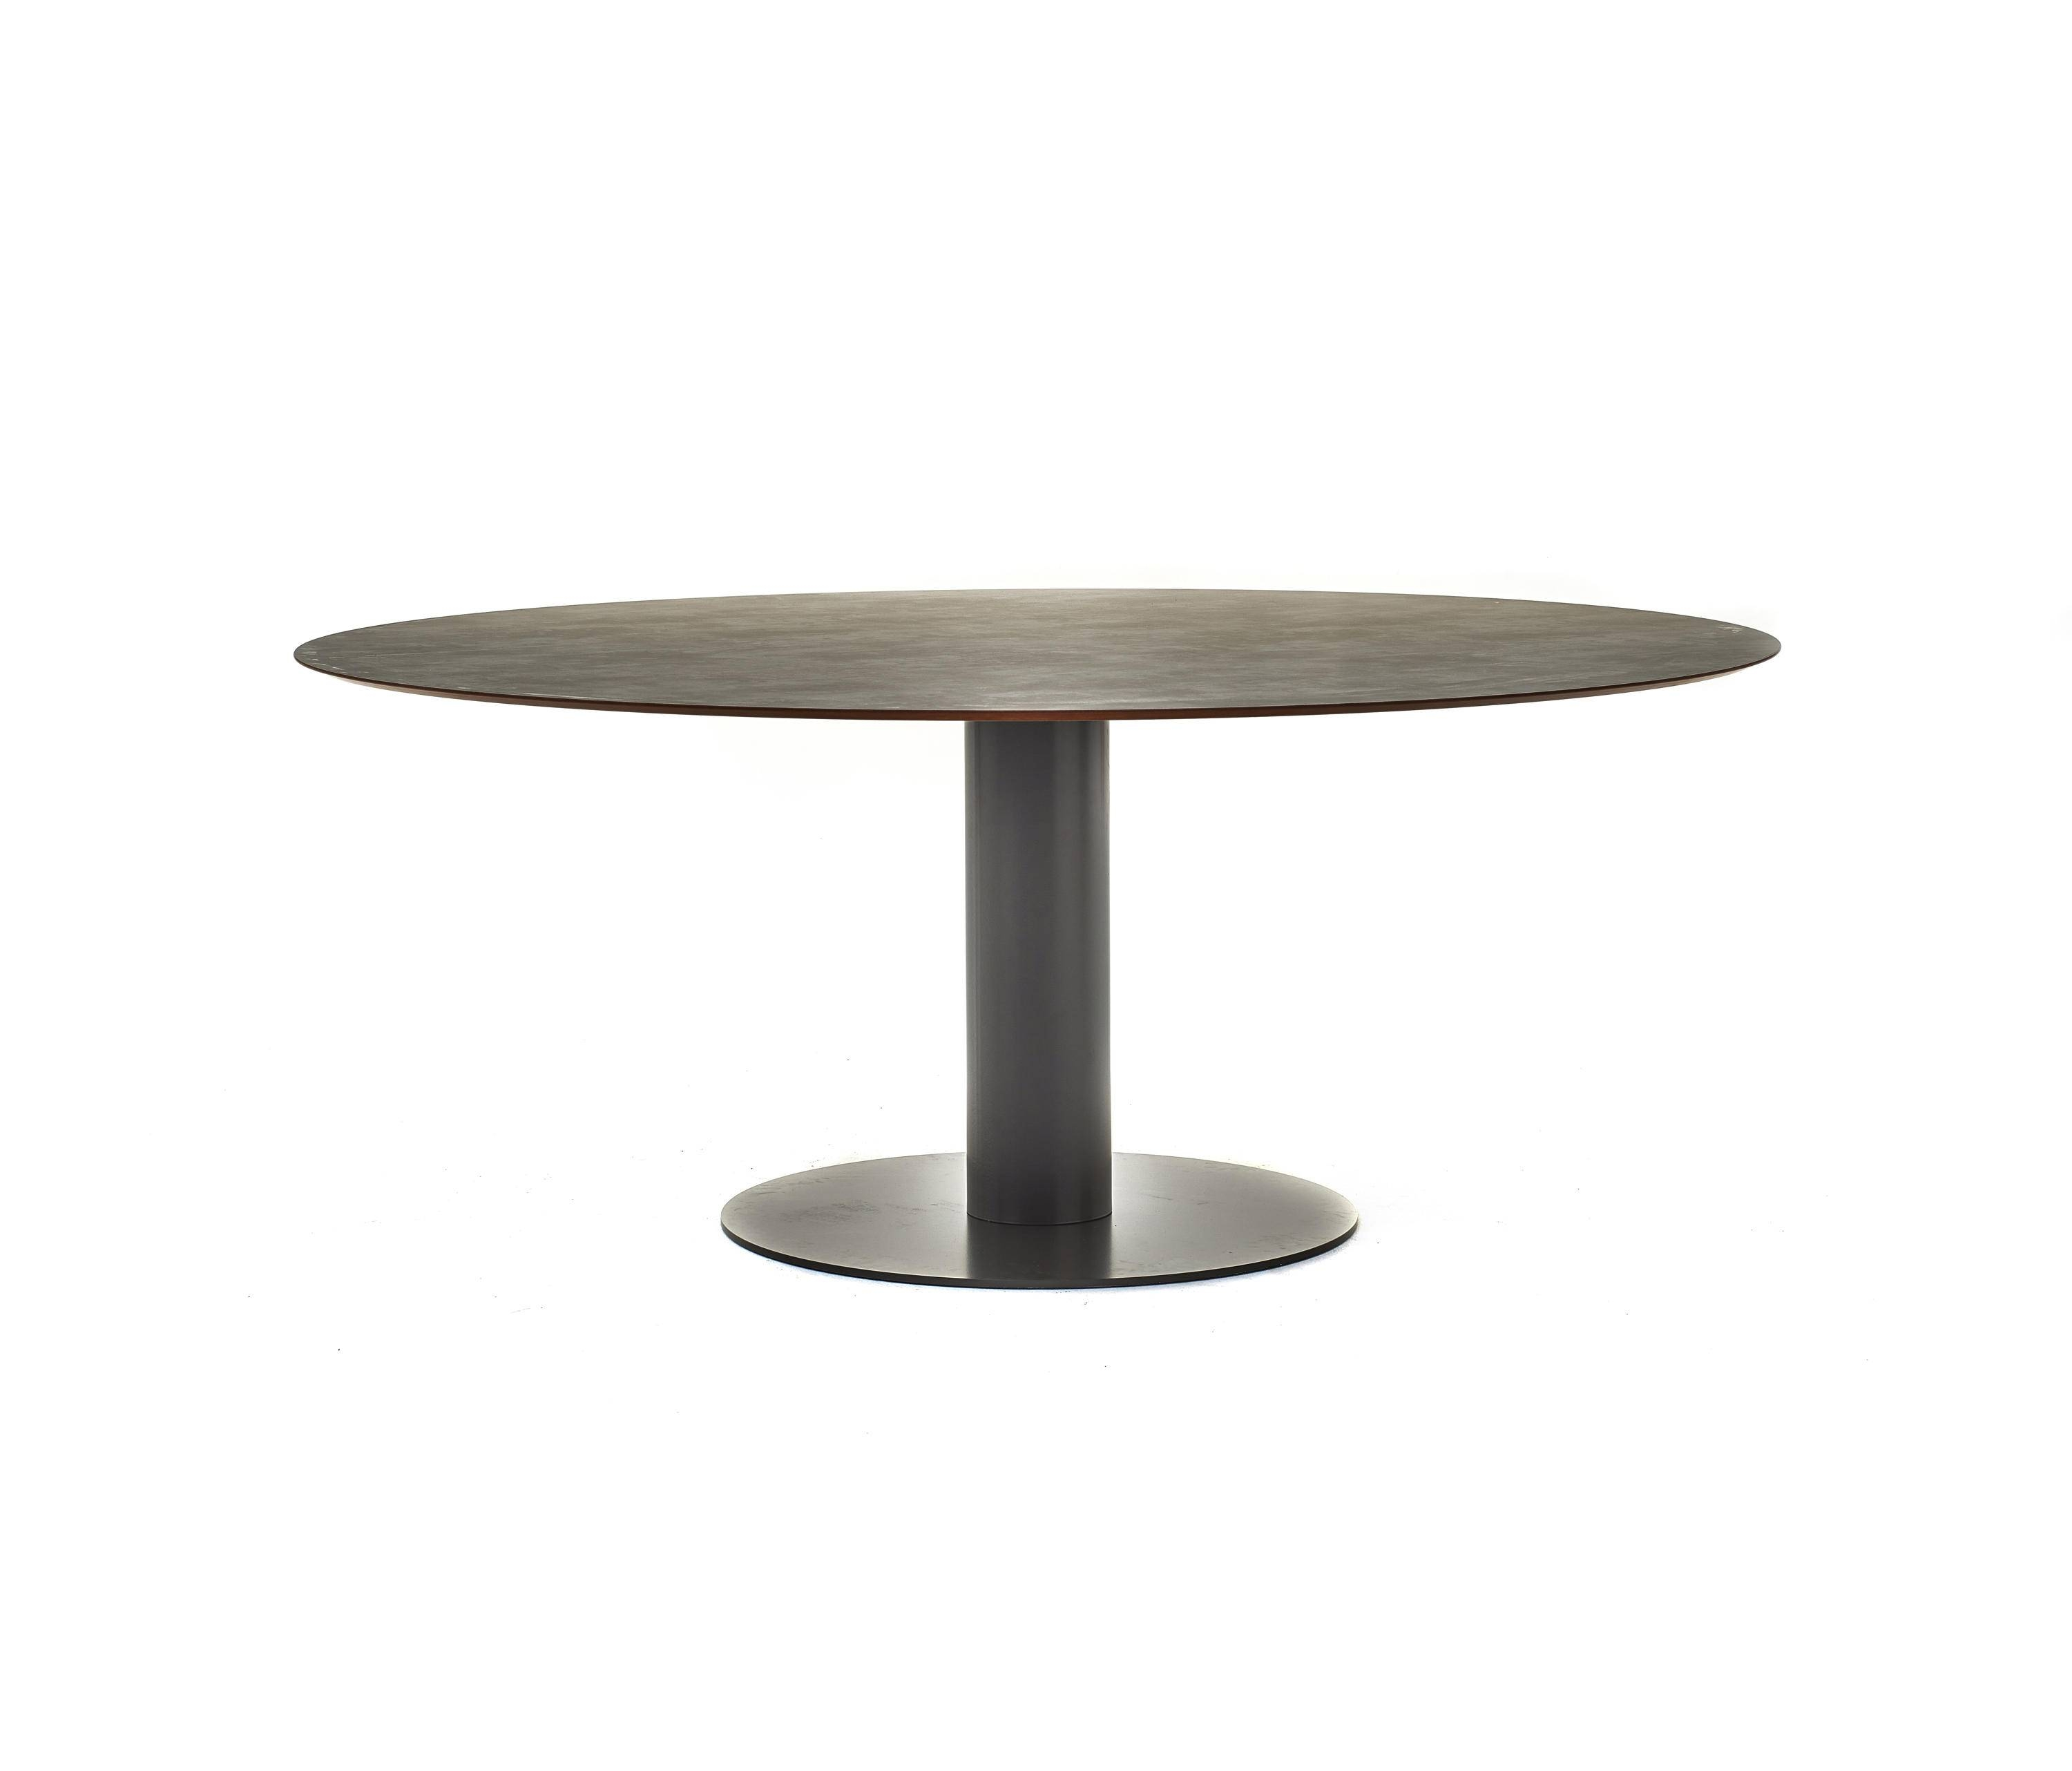 Big Low - Coffee Tables From Varaschin | Architonic with Big Low Coffee Tables (Image 4 of 30)